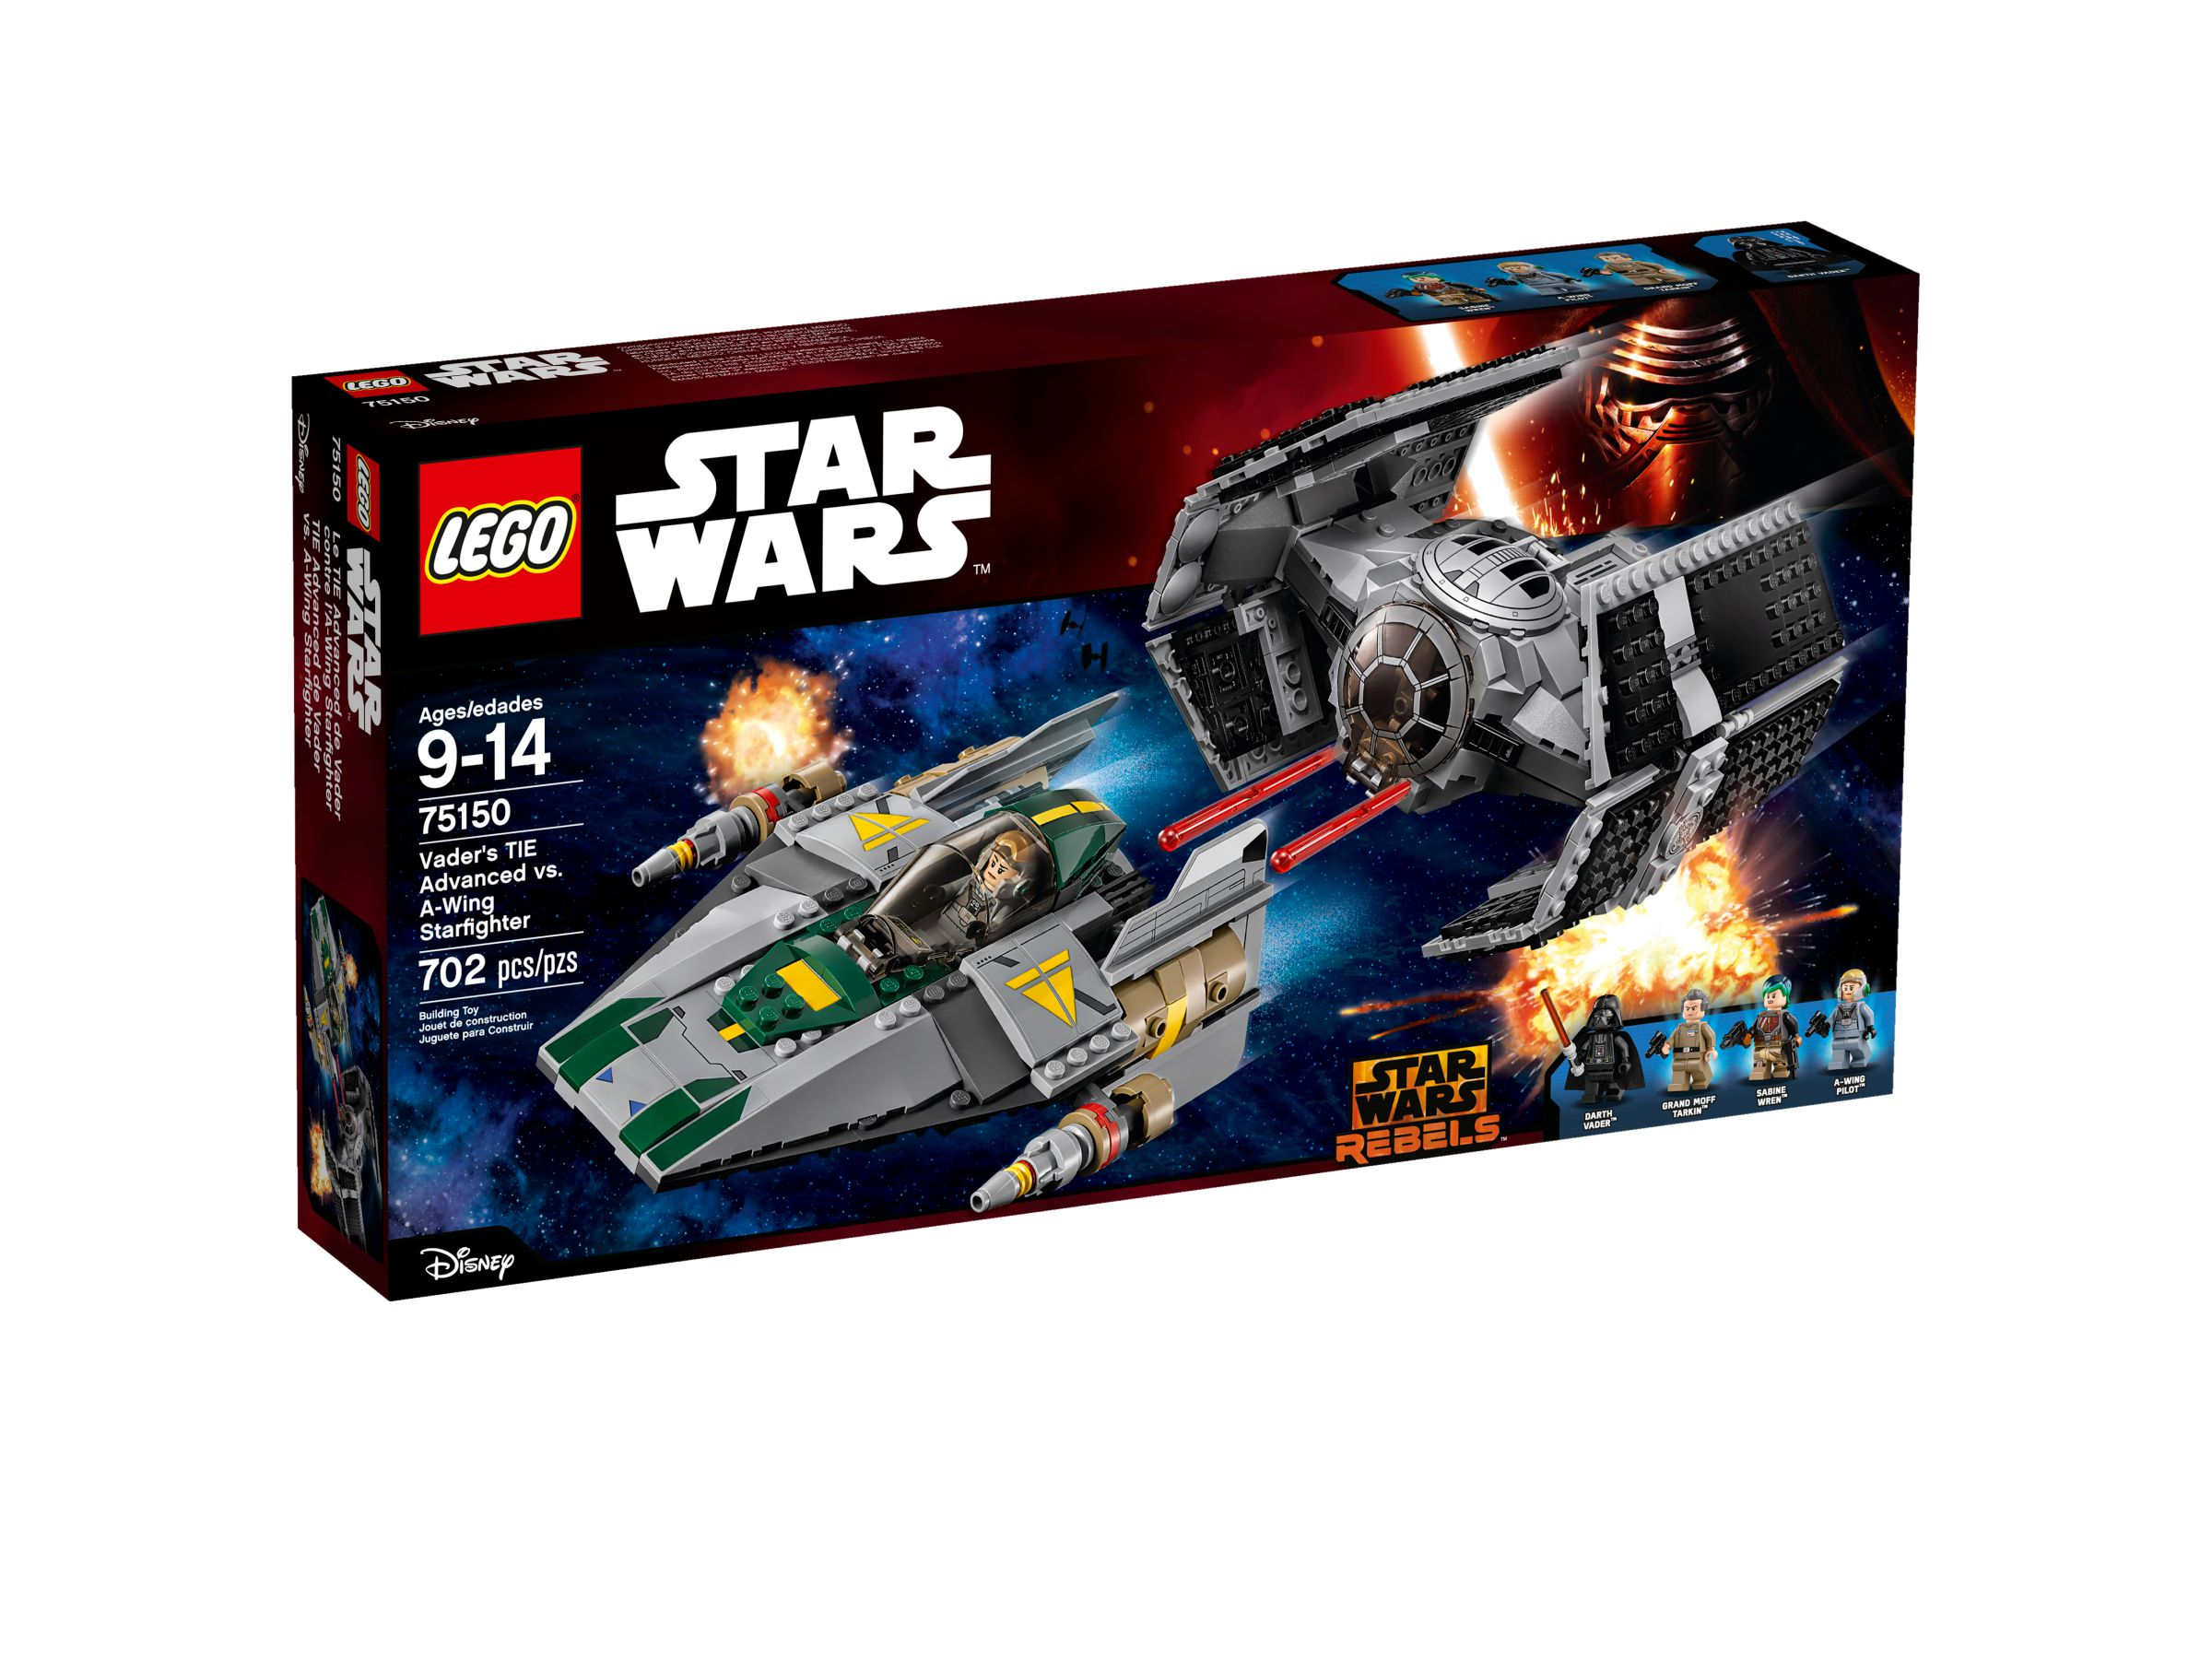 LEGO Star Wars 75150 Vader's TIE Advanced vs. A-Wing Starfighter LEGO_75150_alt1.jpg